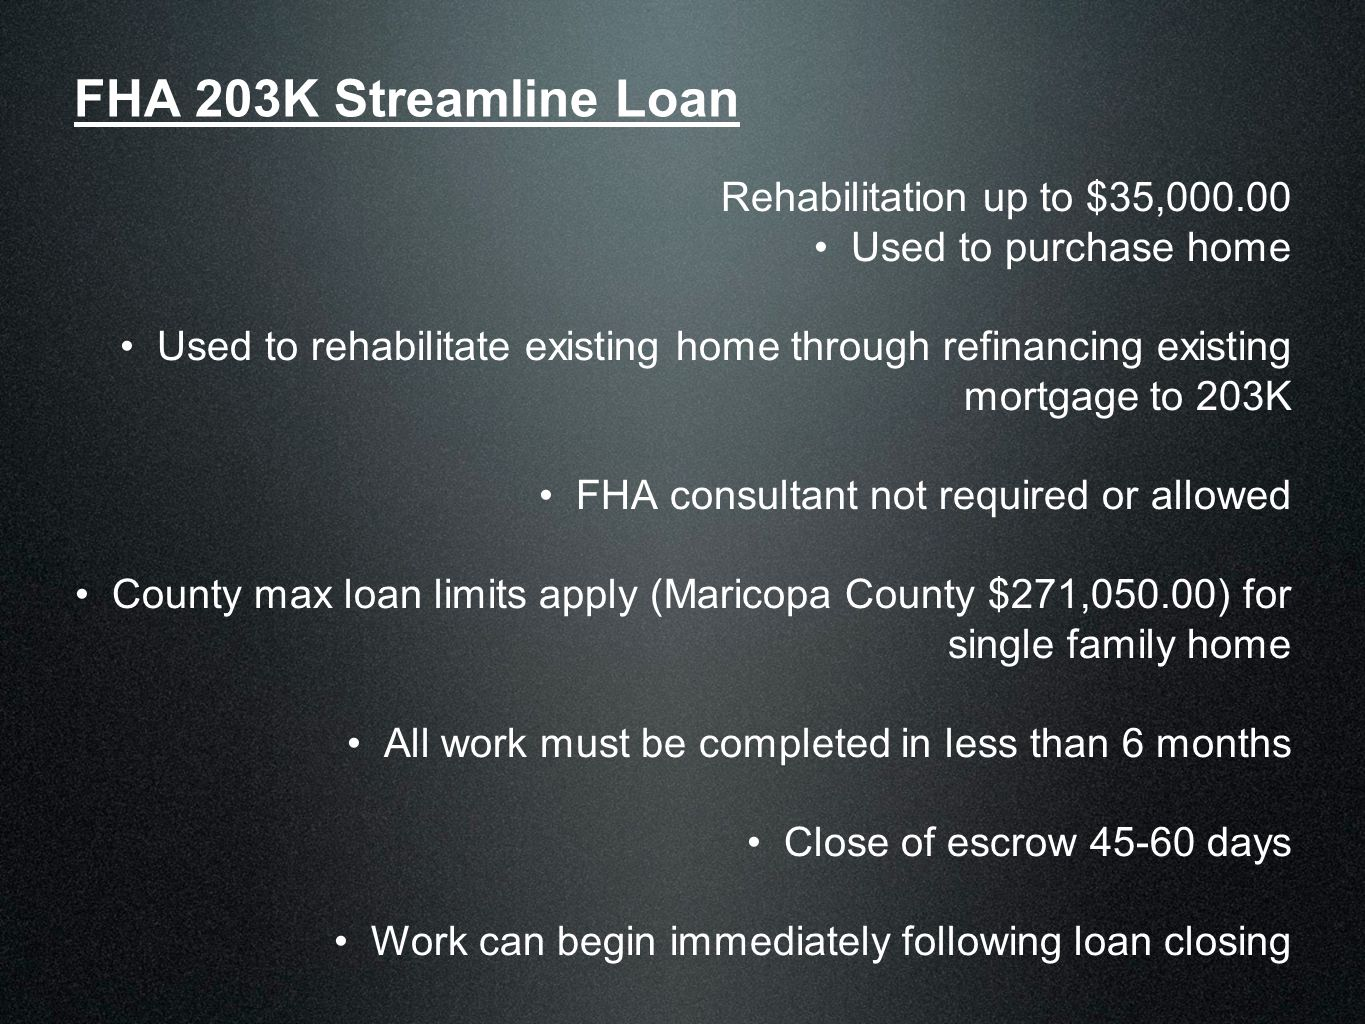 FHA 203K Streamline Loan Rehabilitation up to $35,000.00 Used to purchase home Used to rehabilitate existing home through refinancing existing mortgage to 203K FHA consultant not required or allowed County max loan limits apply (Maricopa County $271,050.00) for single family home All work must be completed in less than 6 months Close of escrow 45-60 days Work can begin immediately following loan closing